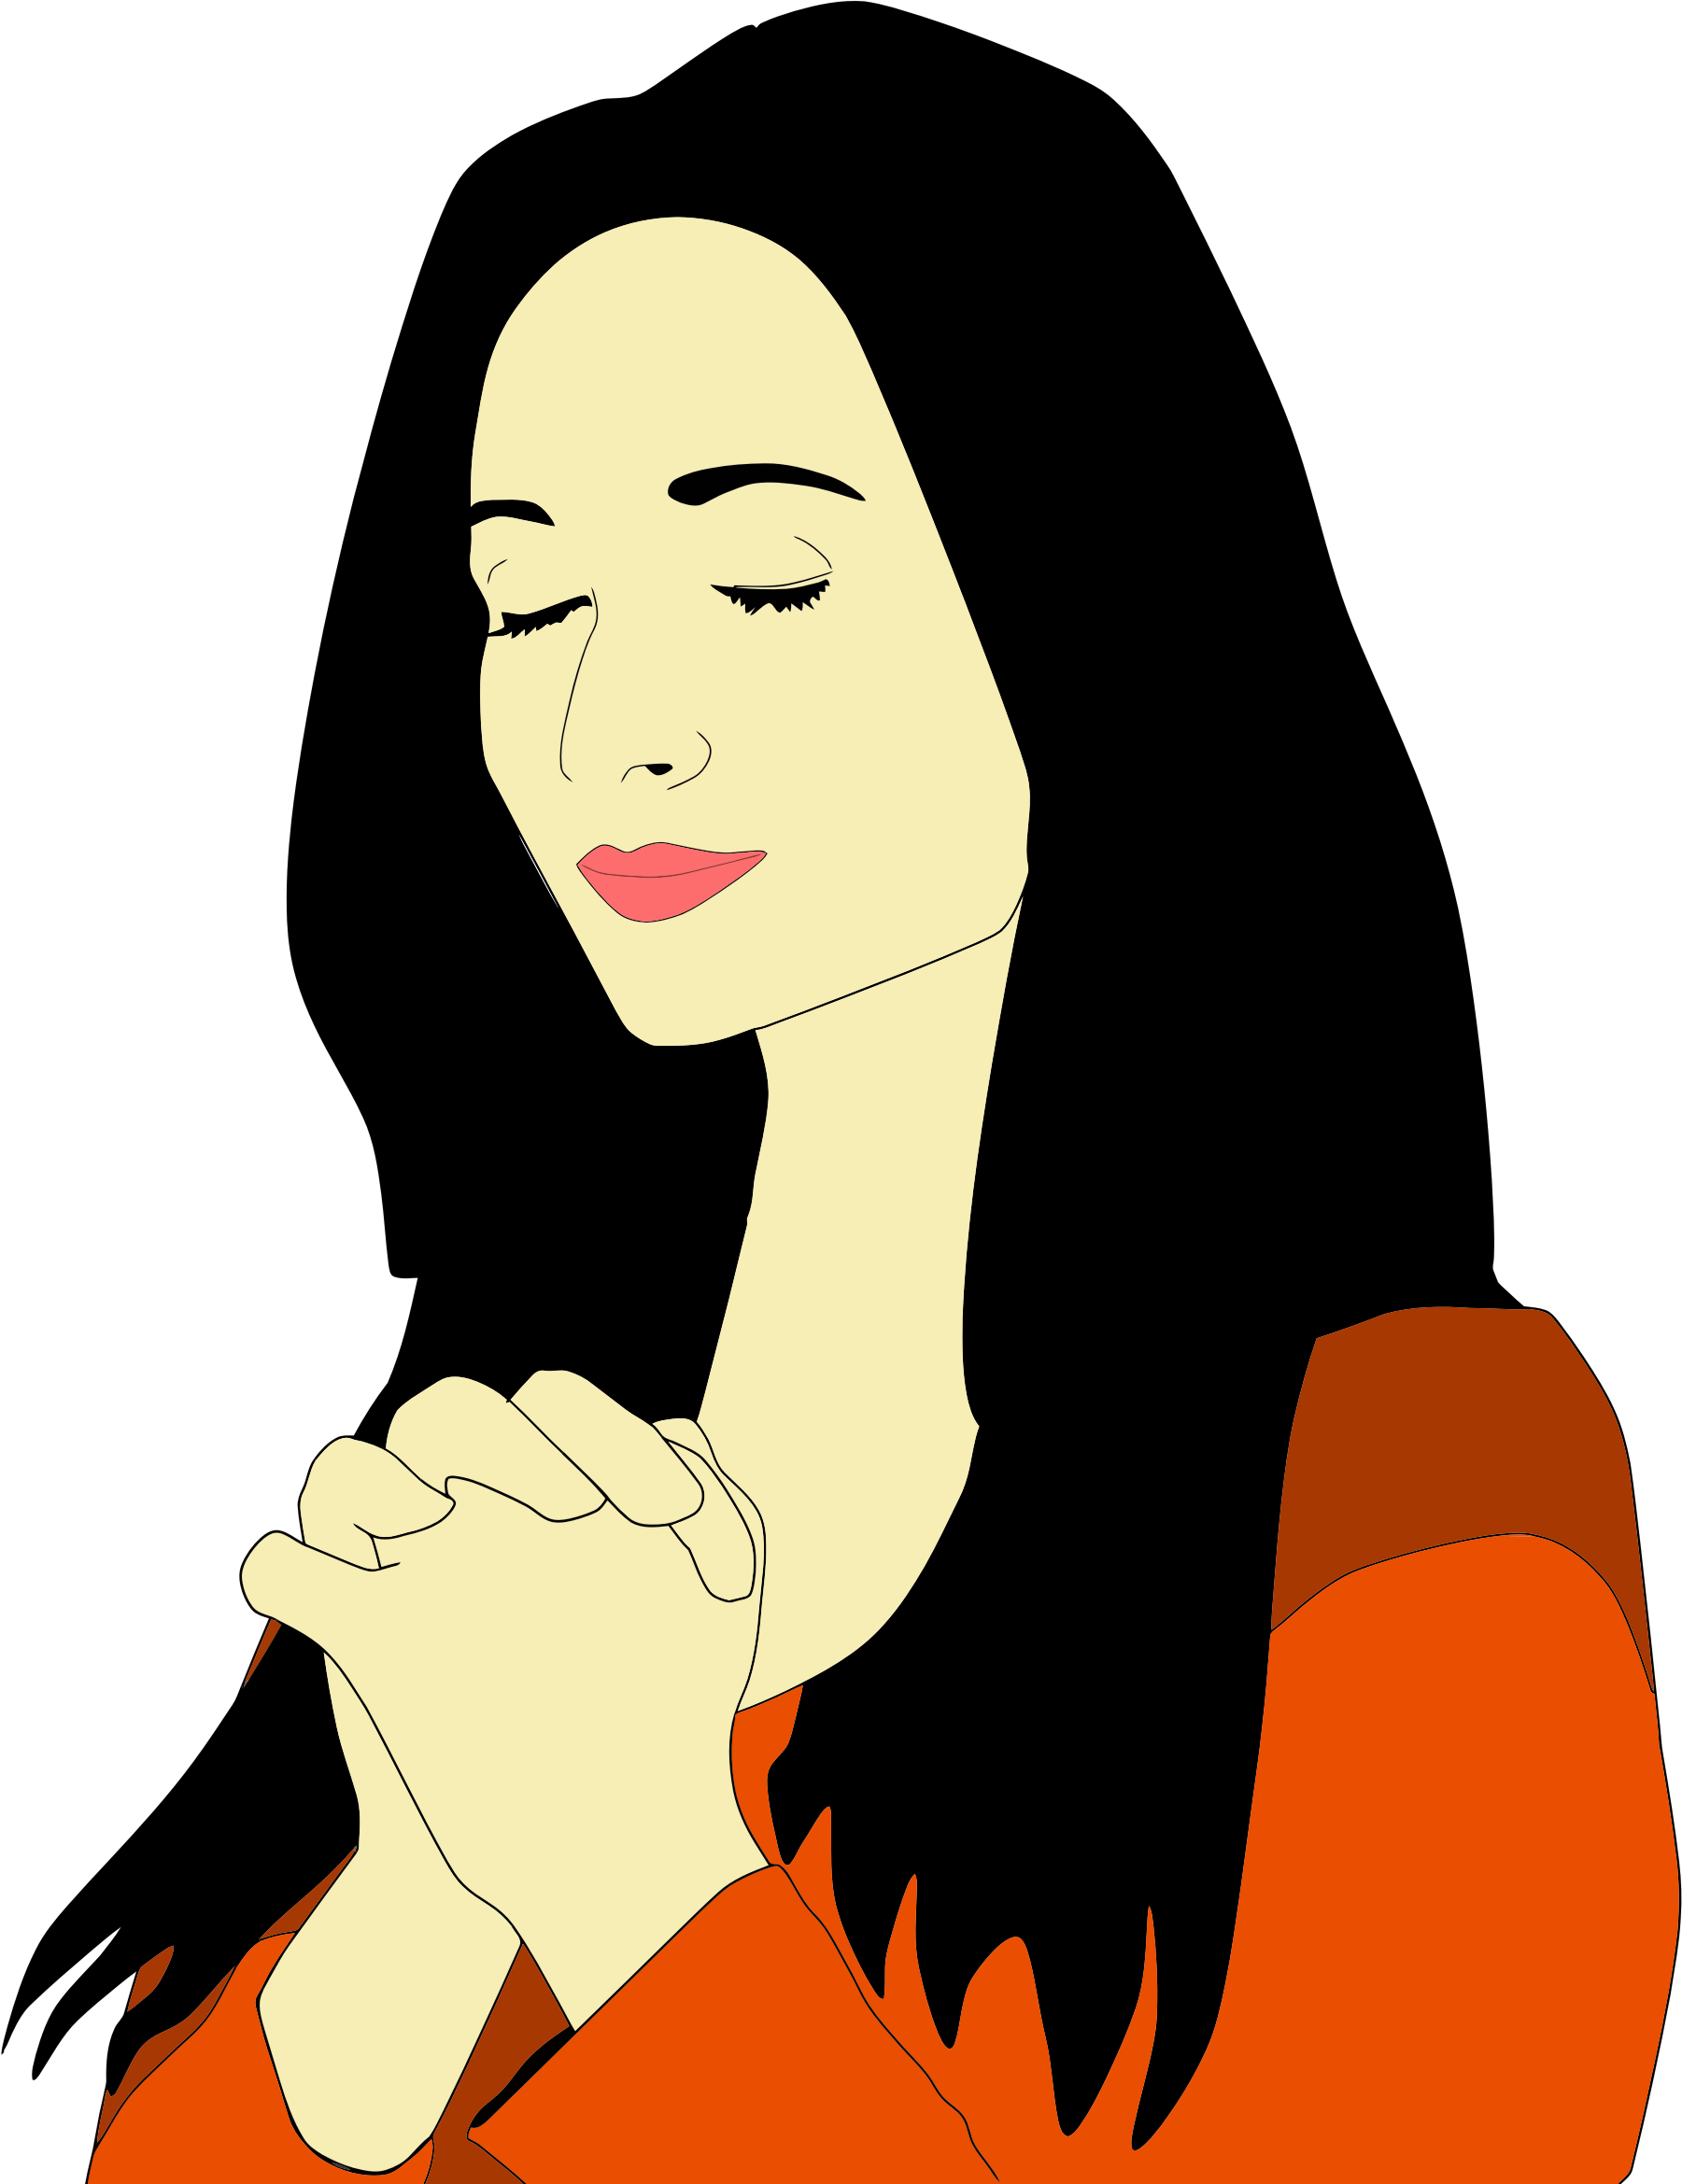 Clipart Of Praying Woman.